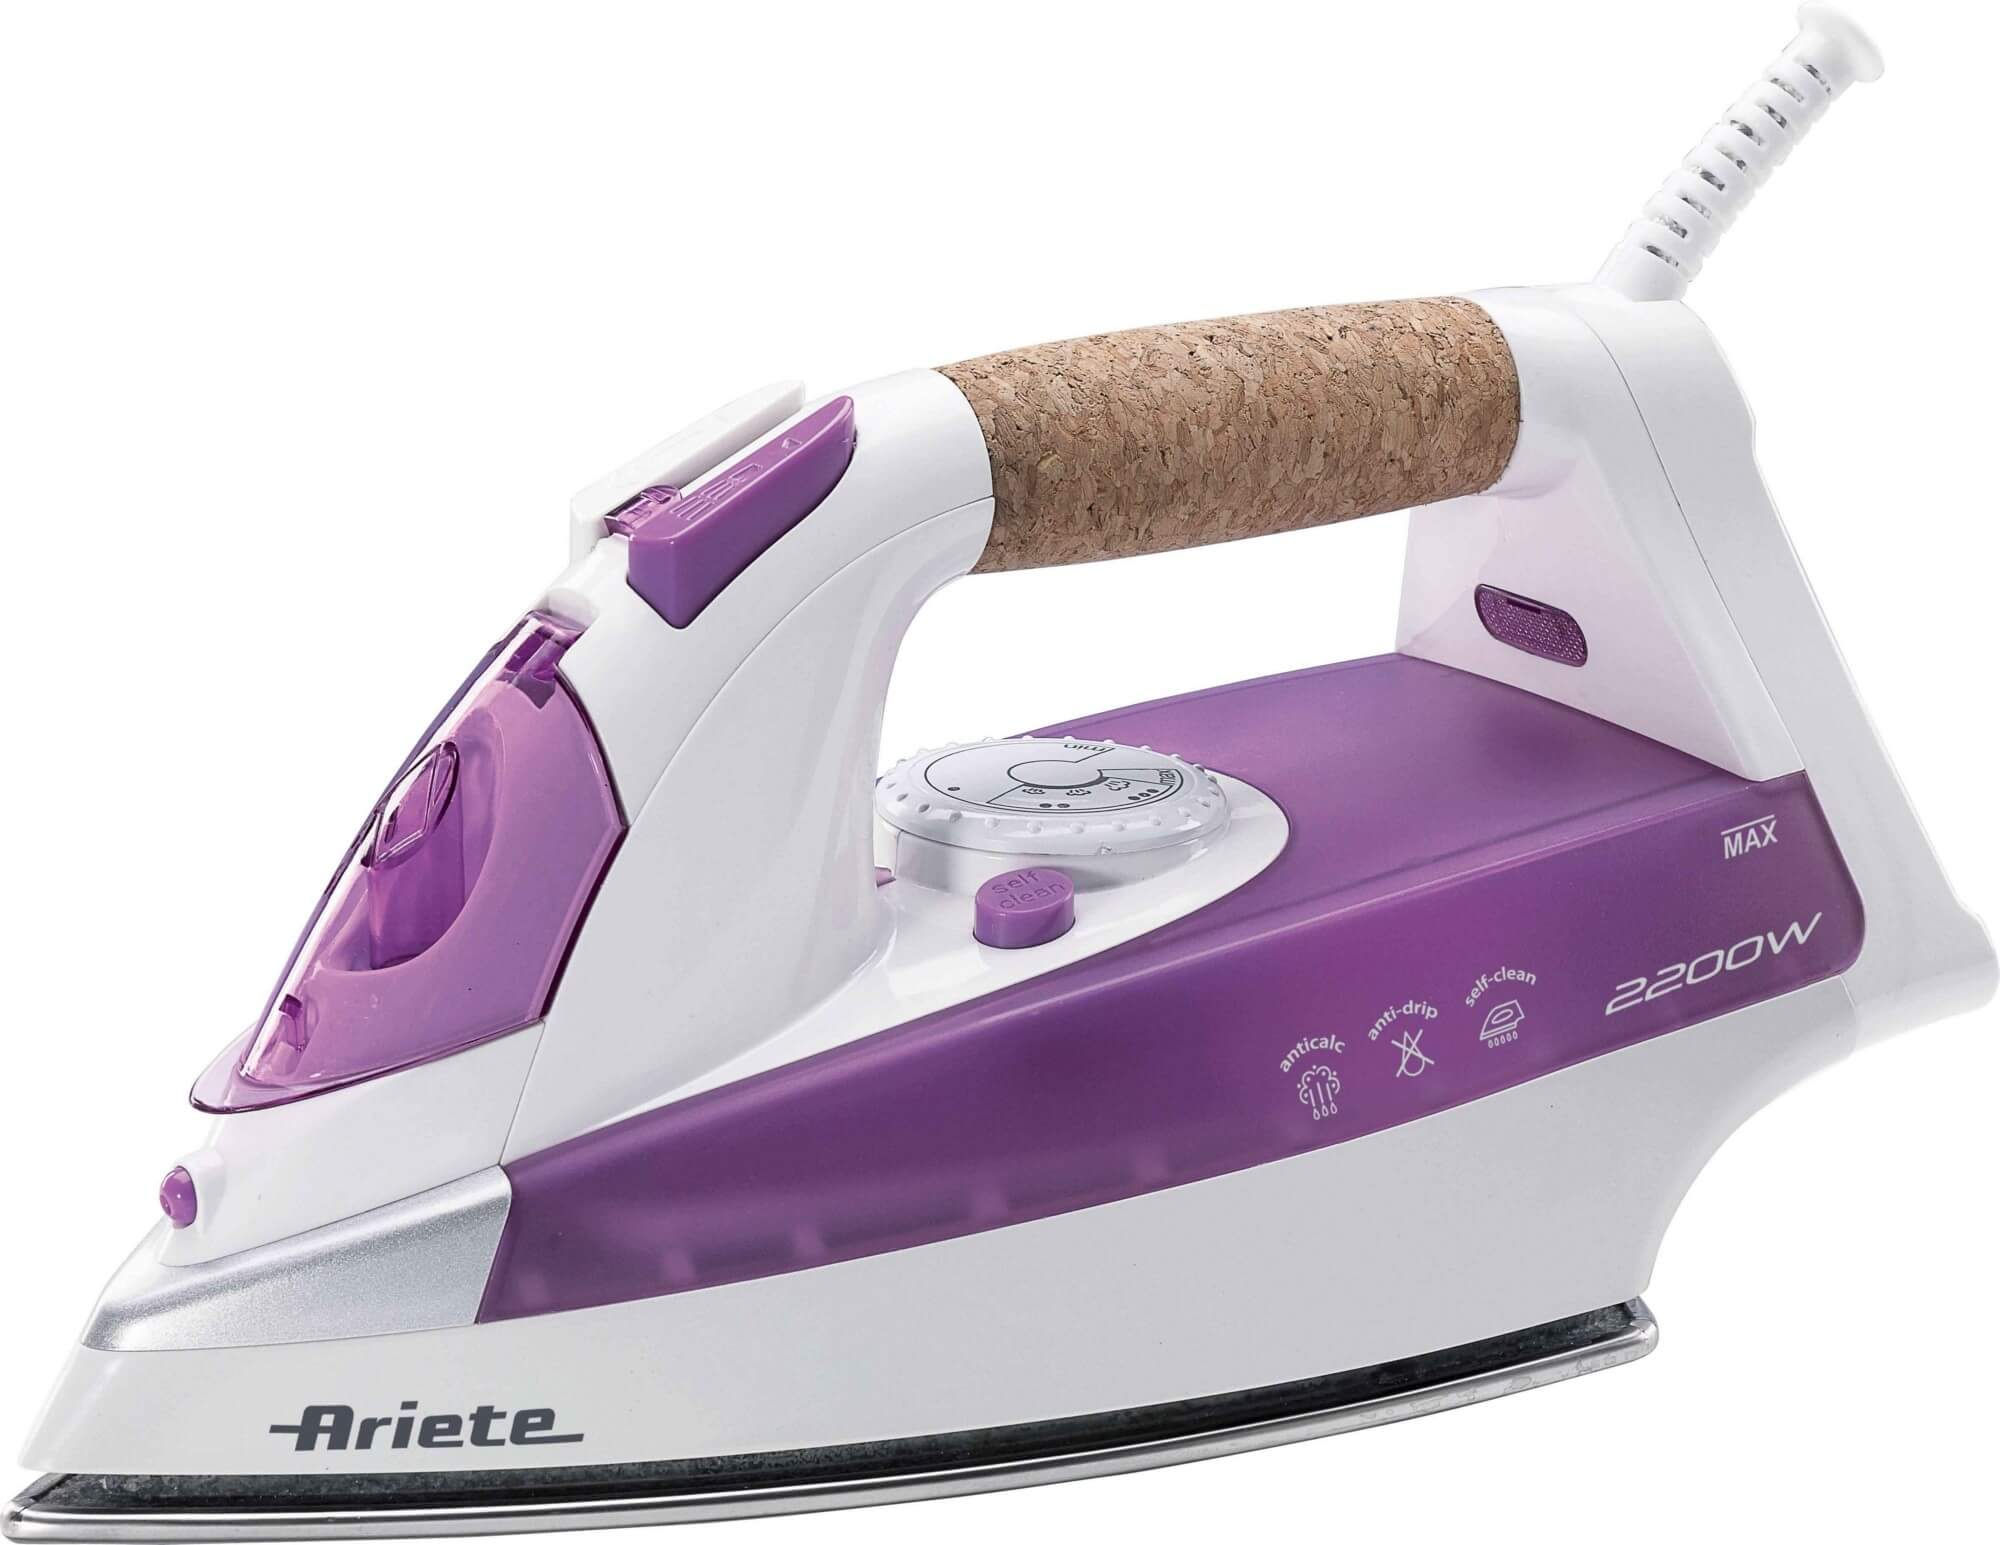 Steam Iron 2200w Purple  Ariete (en. Home Alarm System Monitoring Nannies In Dc. Cable Tv Special Offers Buying Facebook Stock. Lifting Weights To Lose Weight. Accredited Online Theology Schools. Mechanical Engineering Salary In Usa. Mary Washington Graduate School. Scripps Medical Records Dish Internet Pricing. Web Hosting Exchange Email Whole Life Vs Term